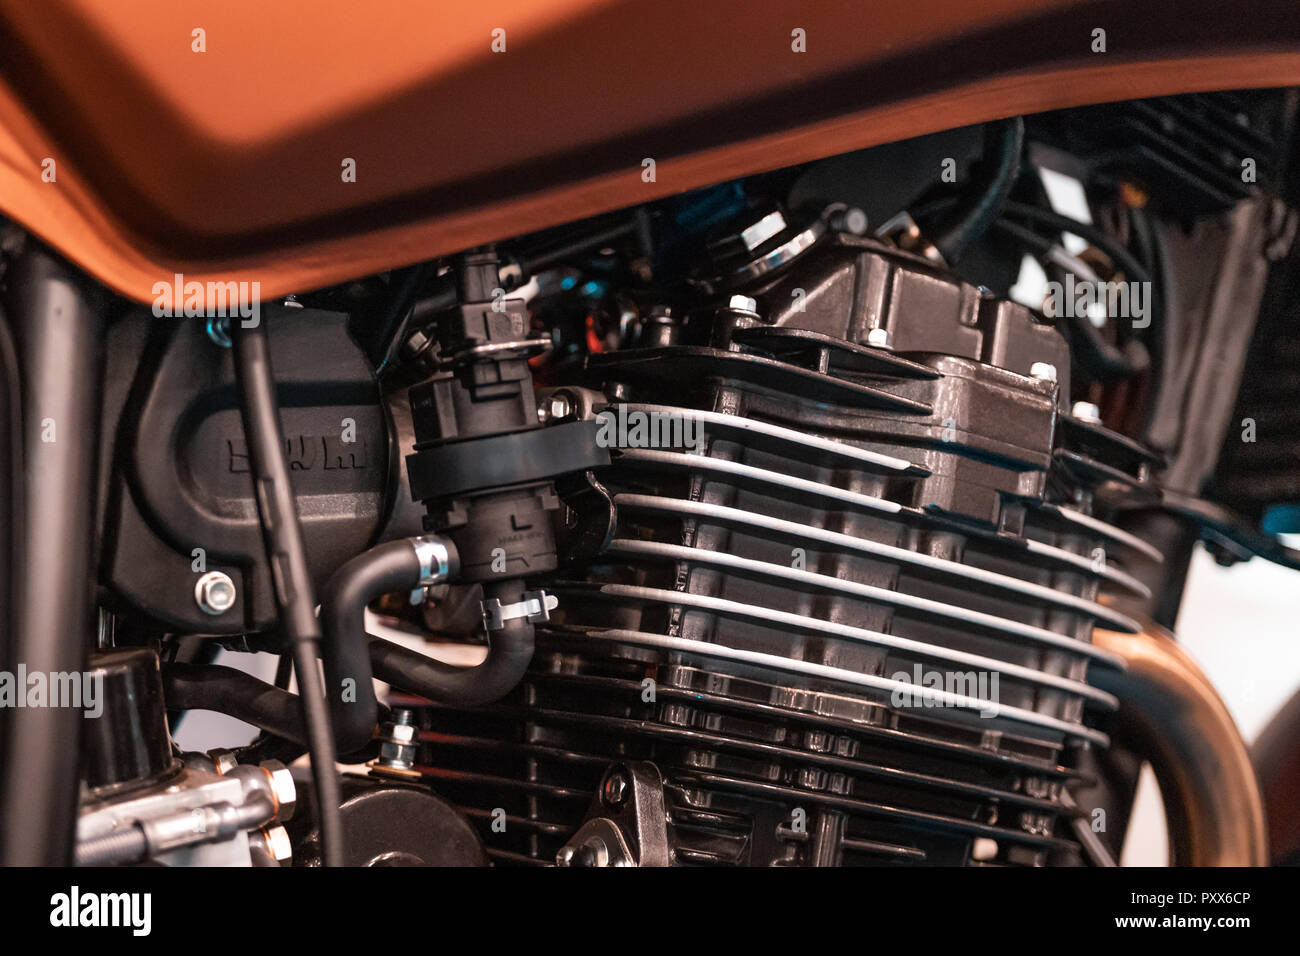 Engine design details, radiator from customized motobike in Italy, Rome. Black parts, chrome pipings. - Stock Image